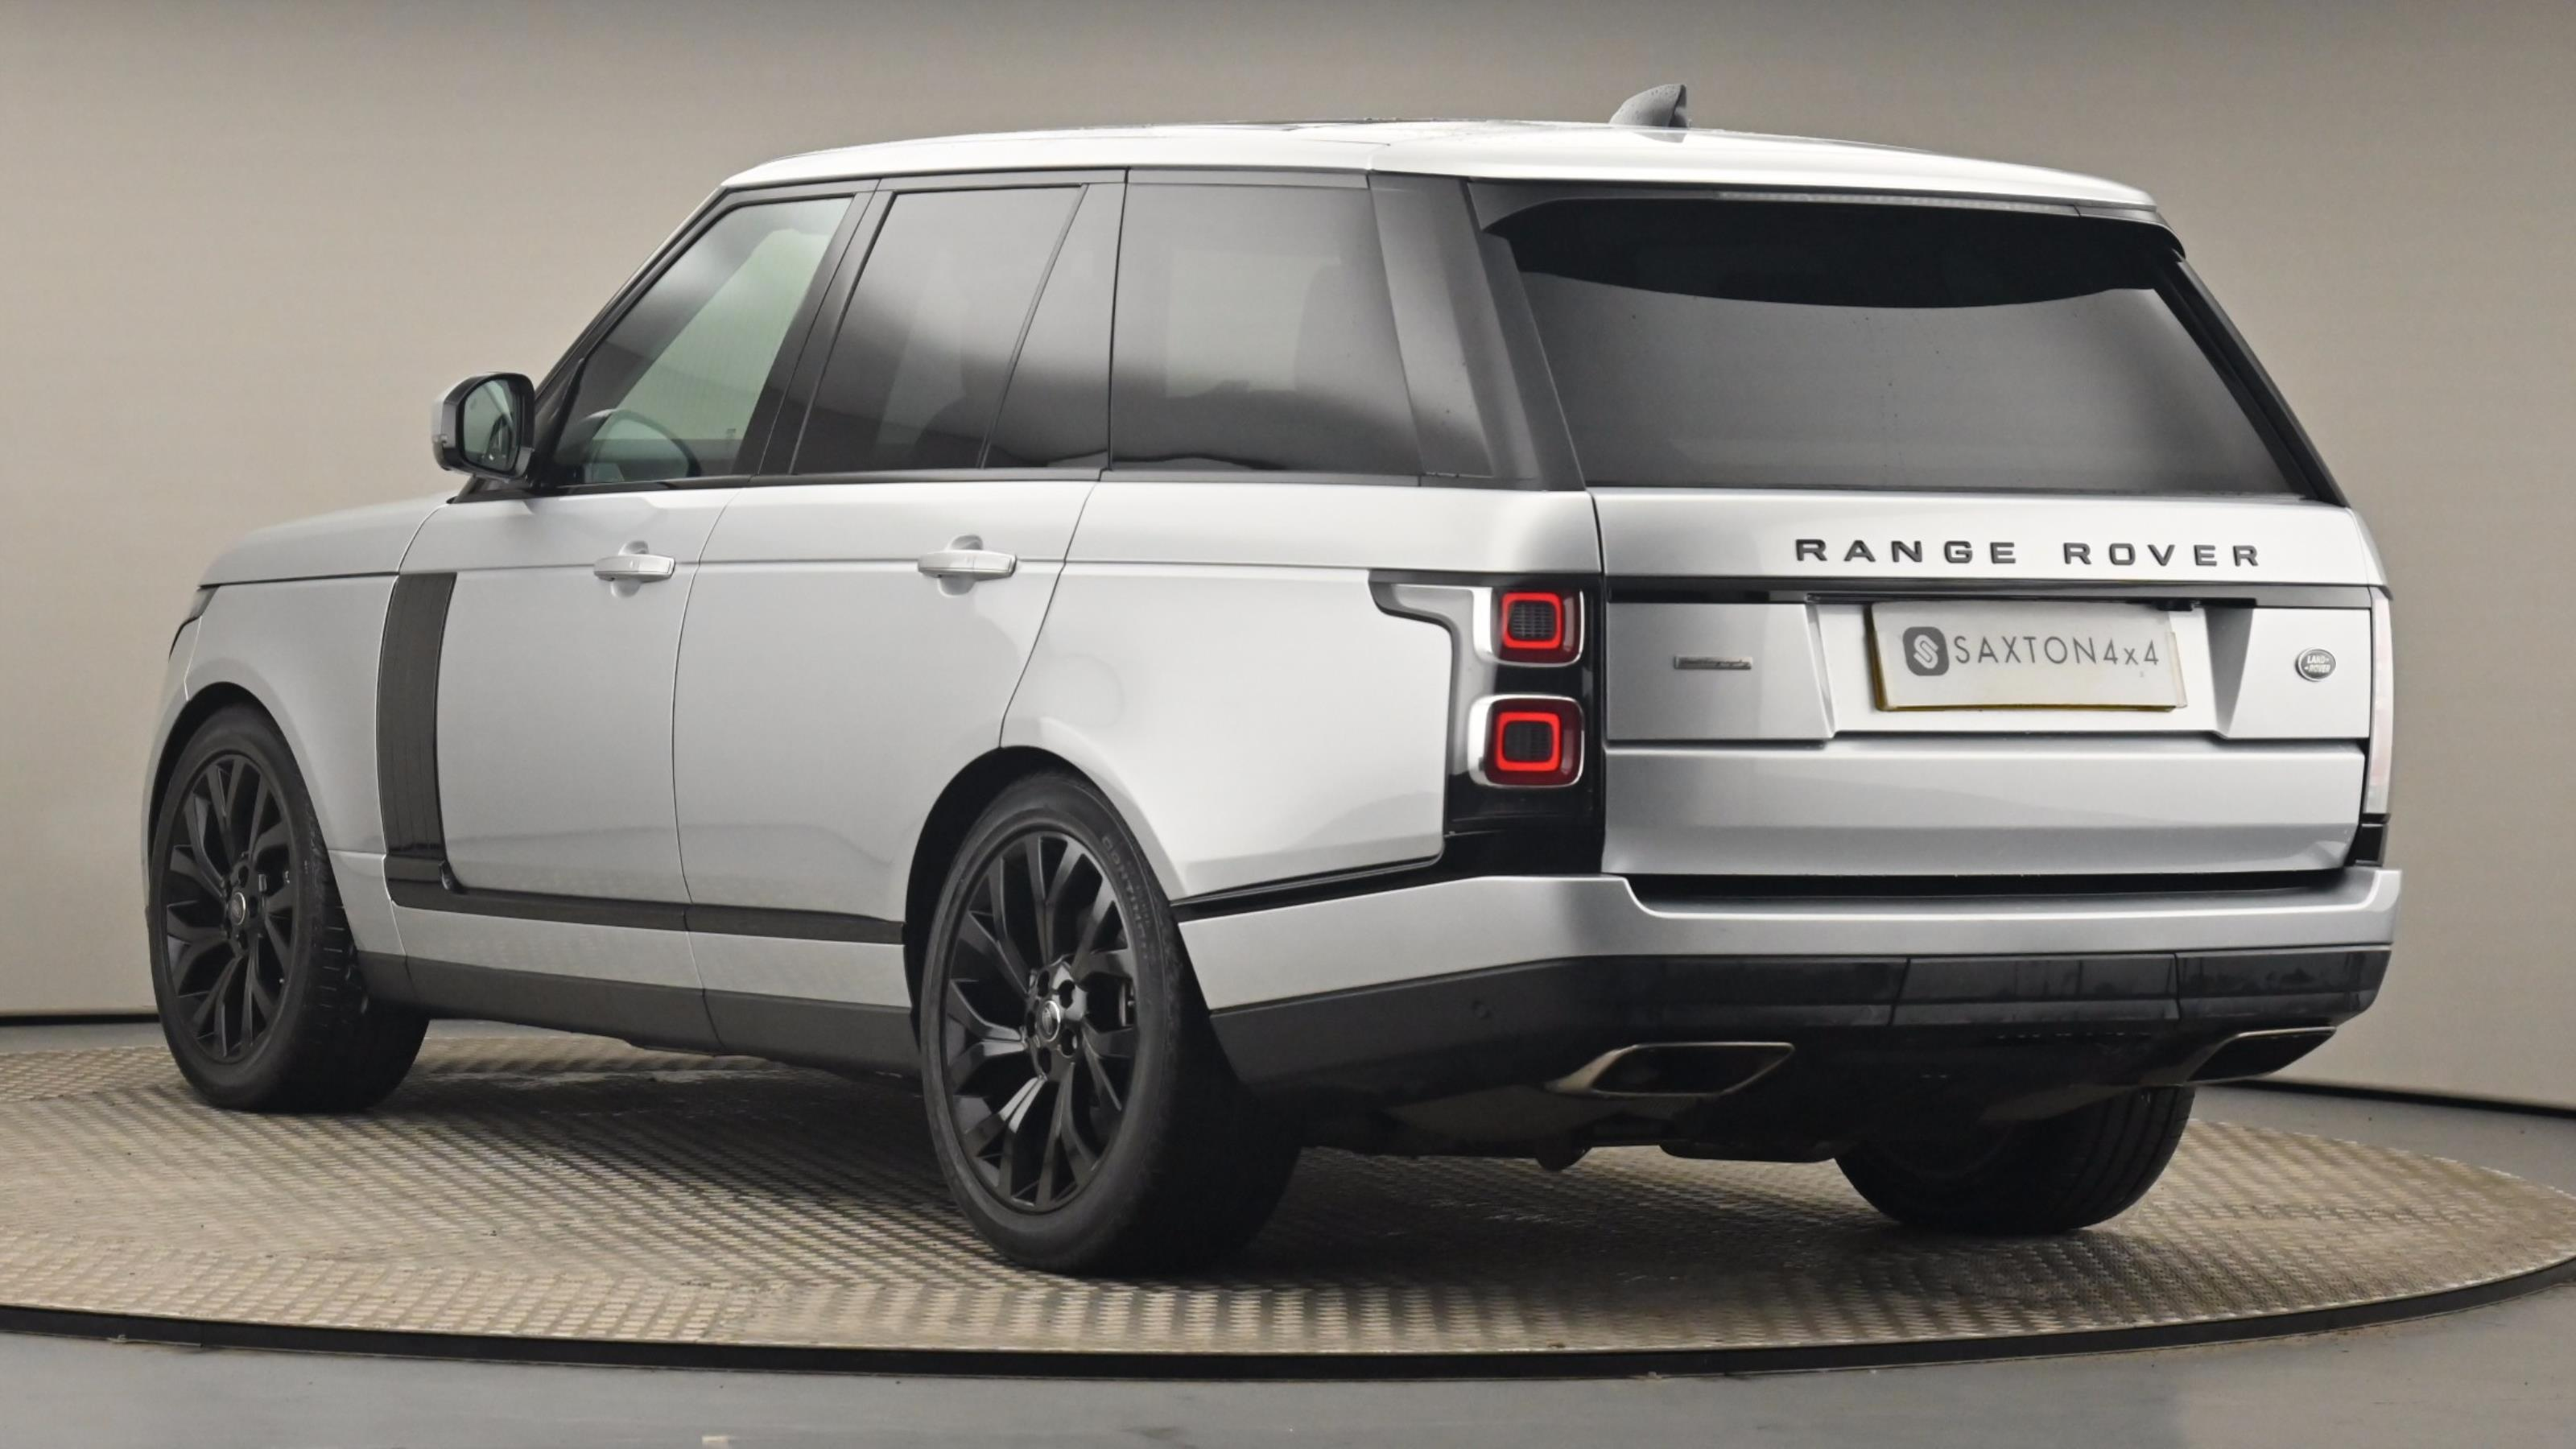 Used 2018 Land Rover RANGE ROVER 4.4 SDV8 Autobiography 4dr Auto Silver at Saxton4x4